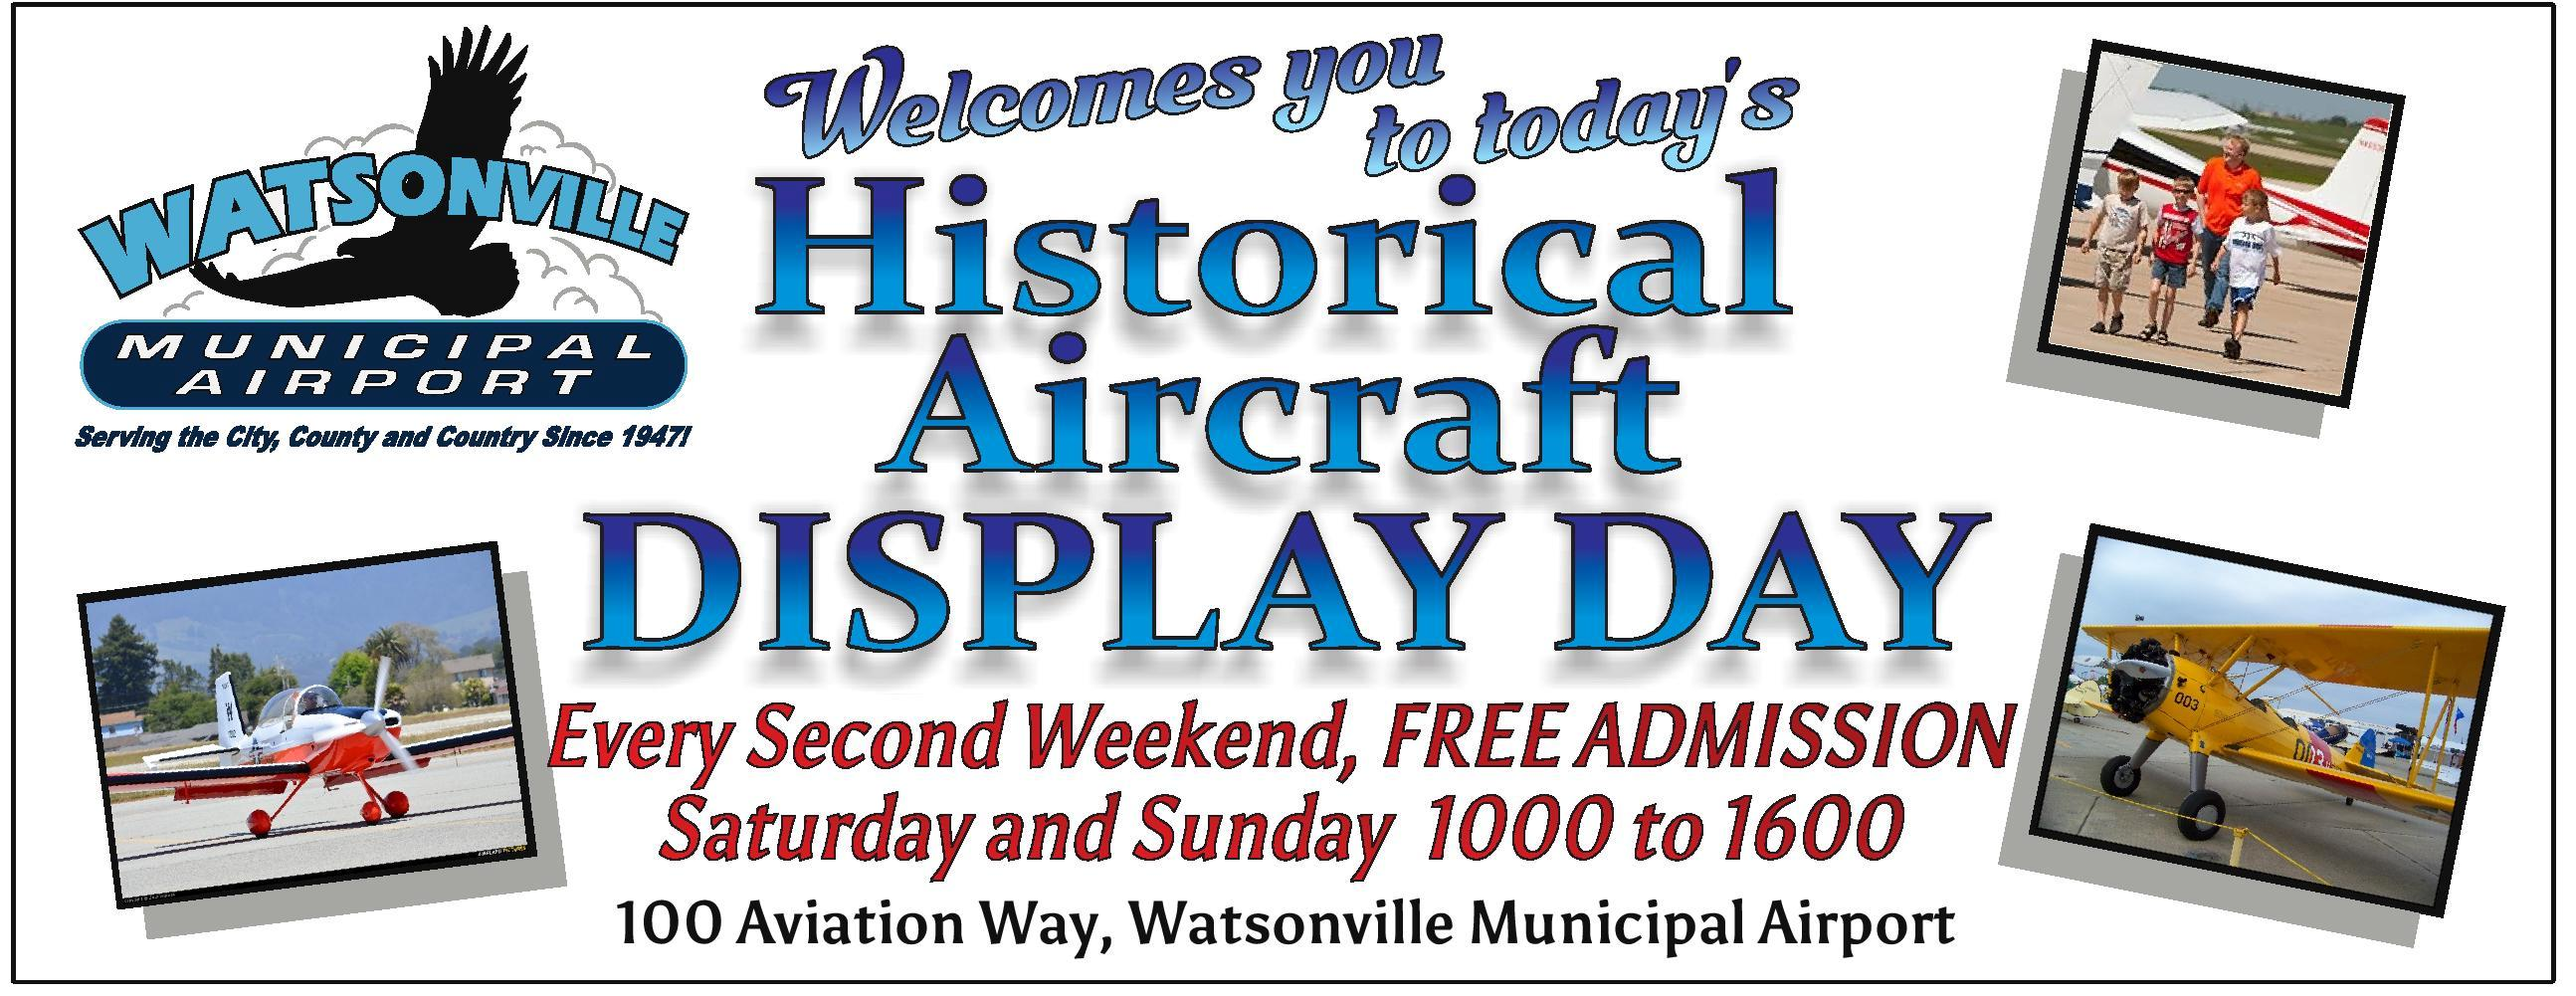 2nd Weekend Display